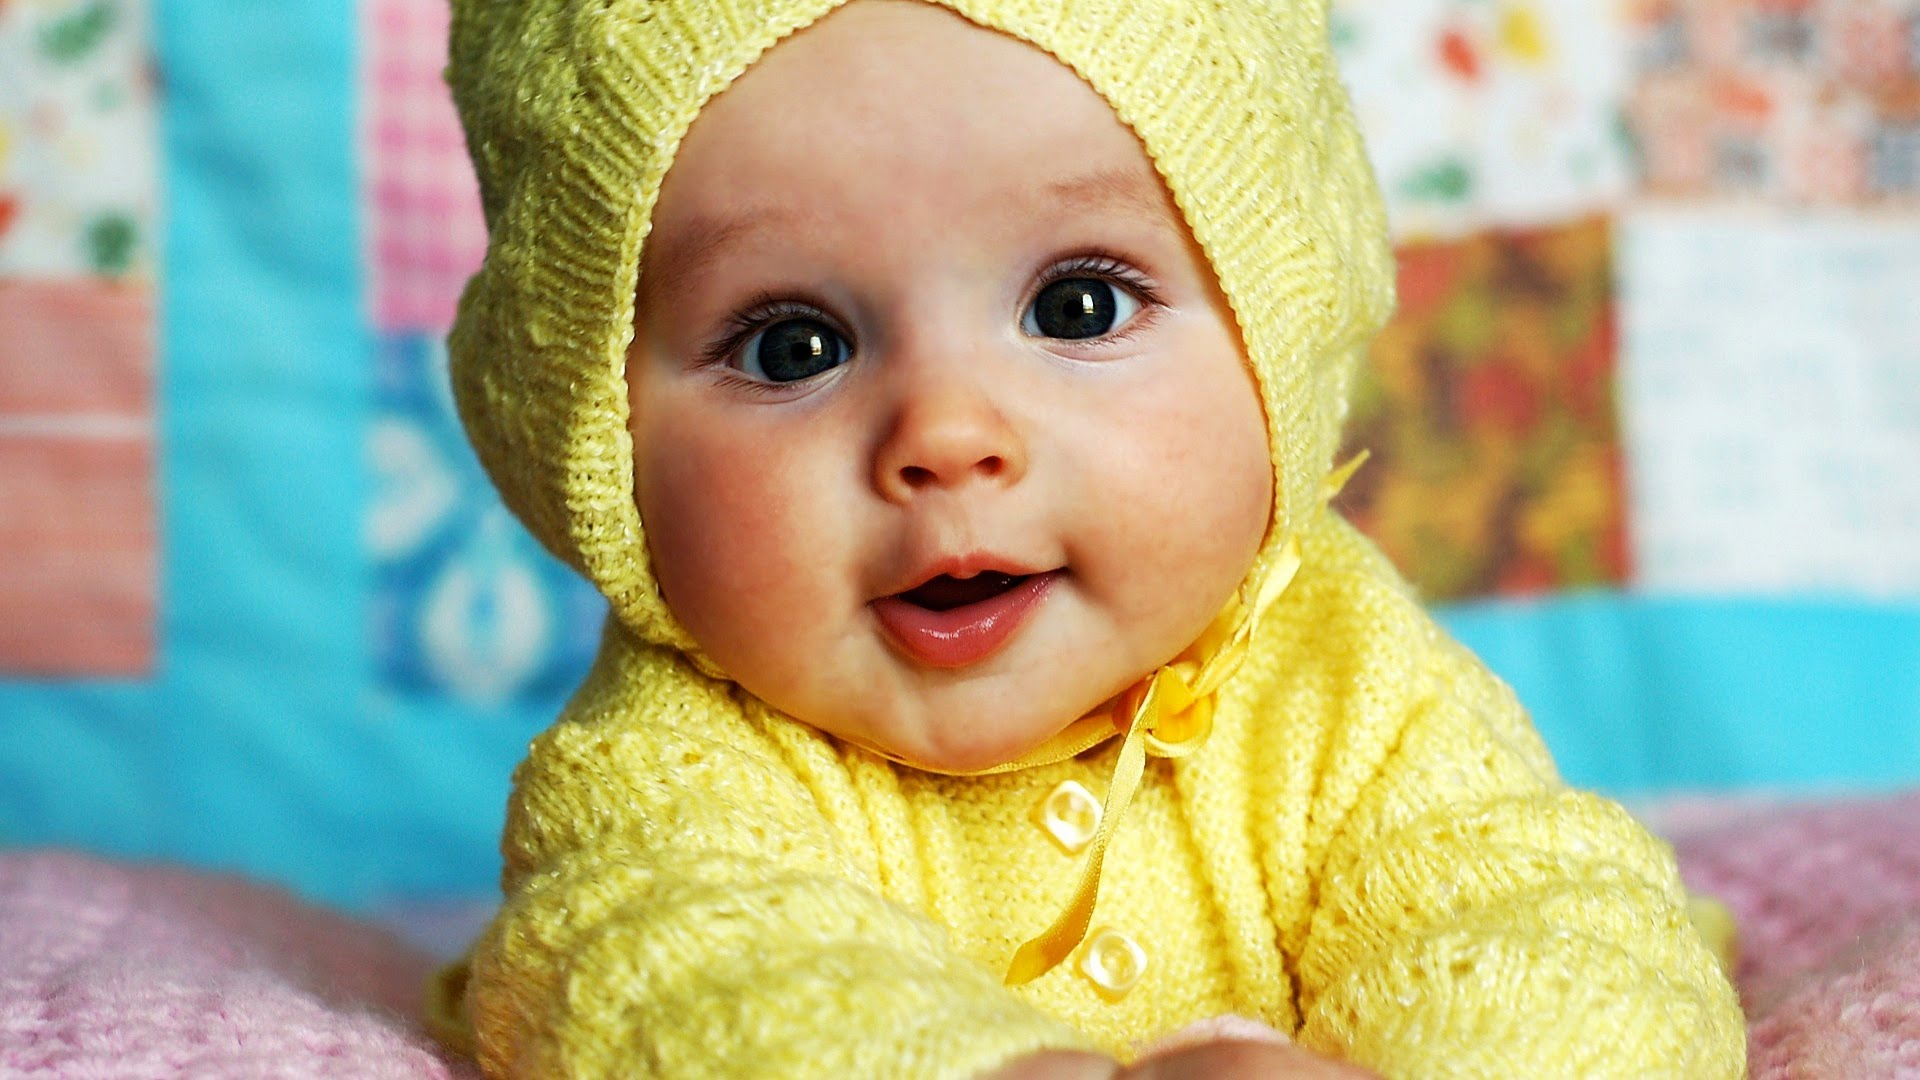 Wallpaper download baby boy - Cute Baby Boy Pictures Hd Wallpapers Download